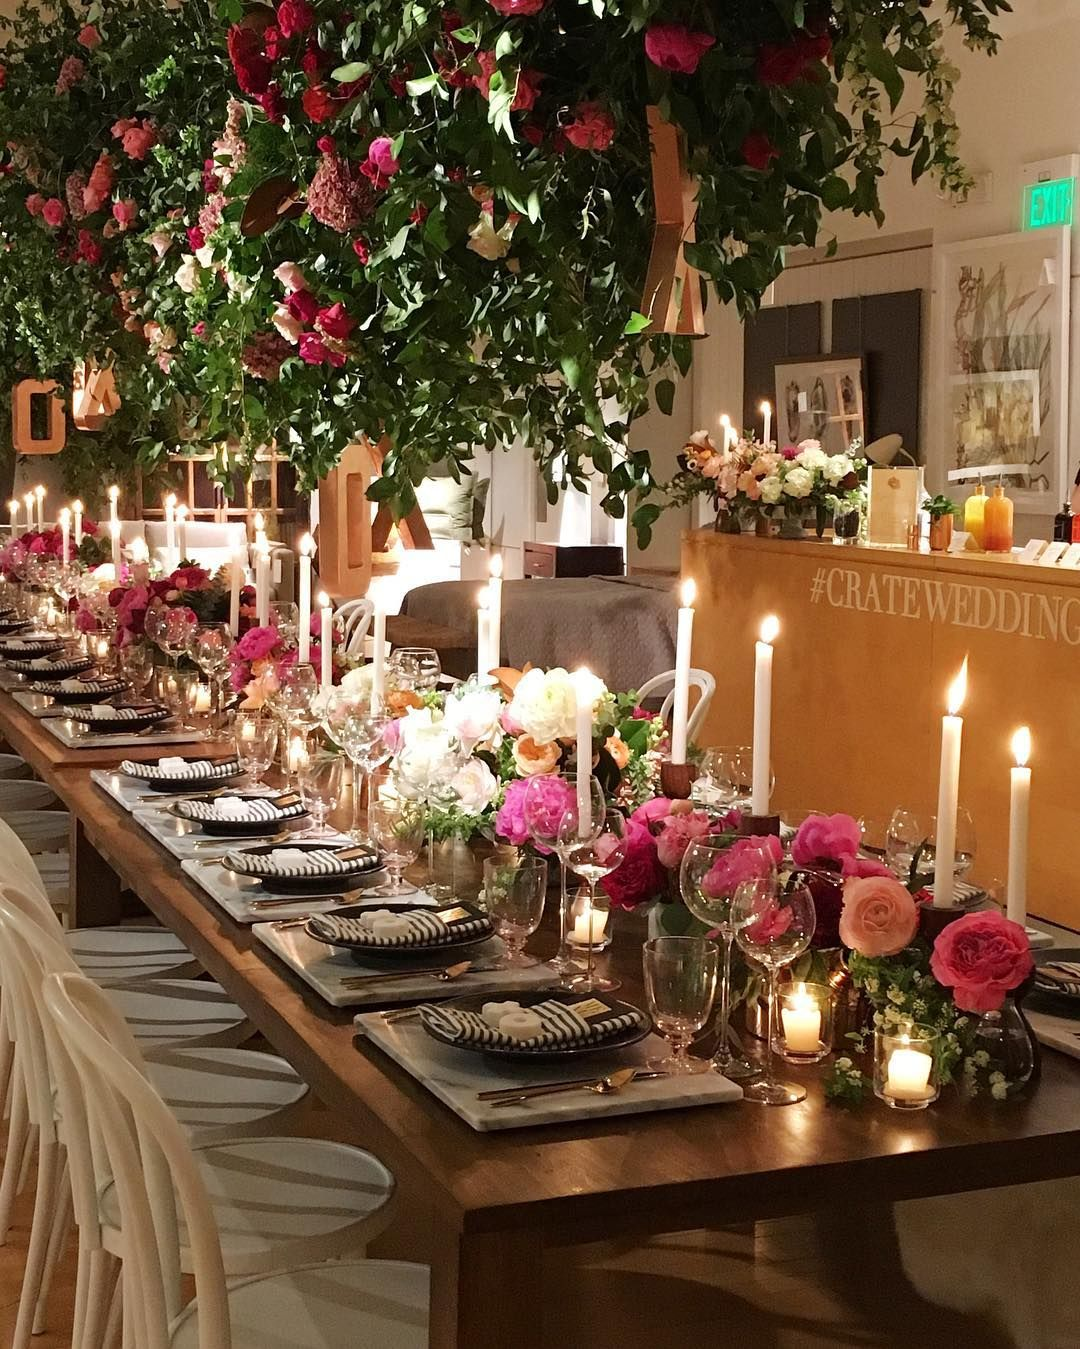 Wedding decorations for reception january 2019 Pin by Caitlin Drinkwater on Wedding  Pinterest  Crates Bridal